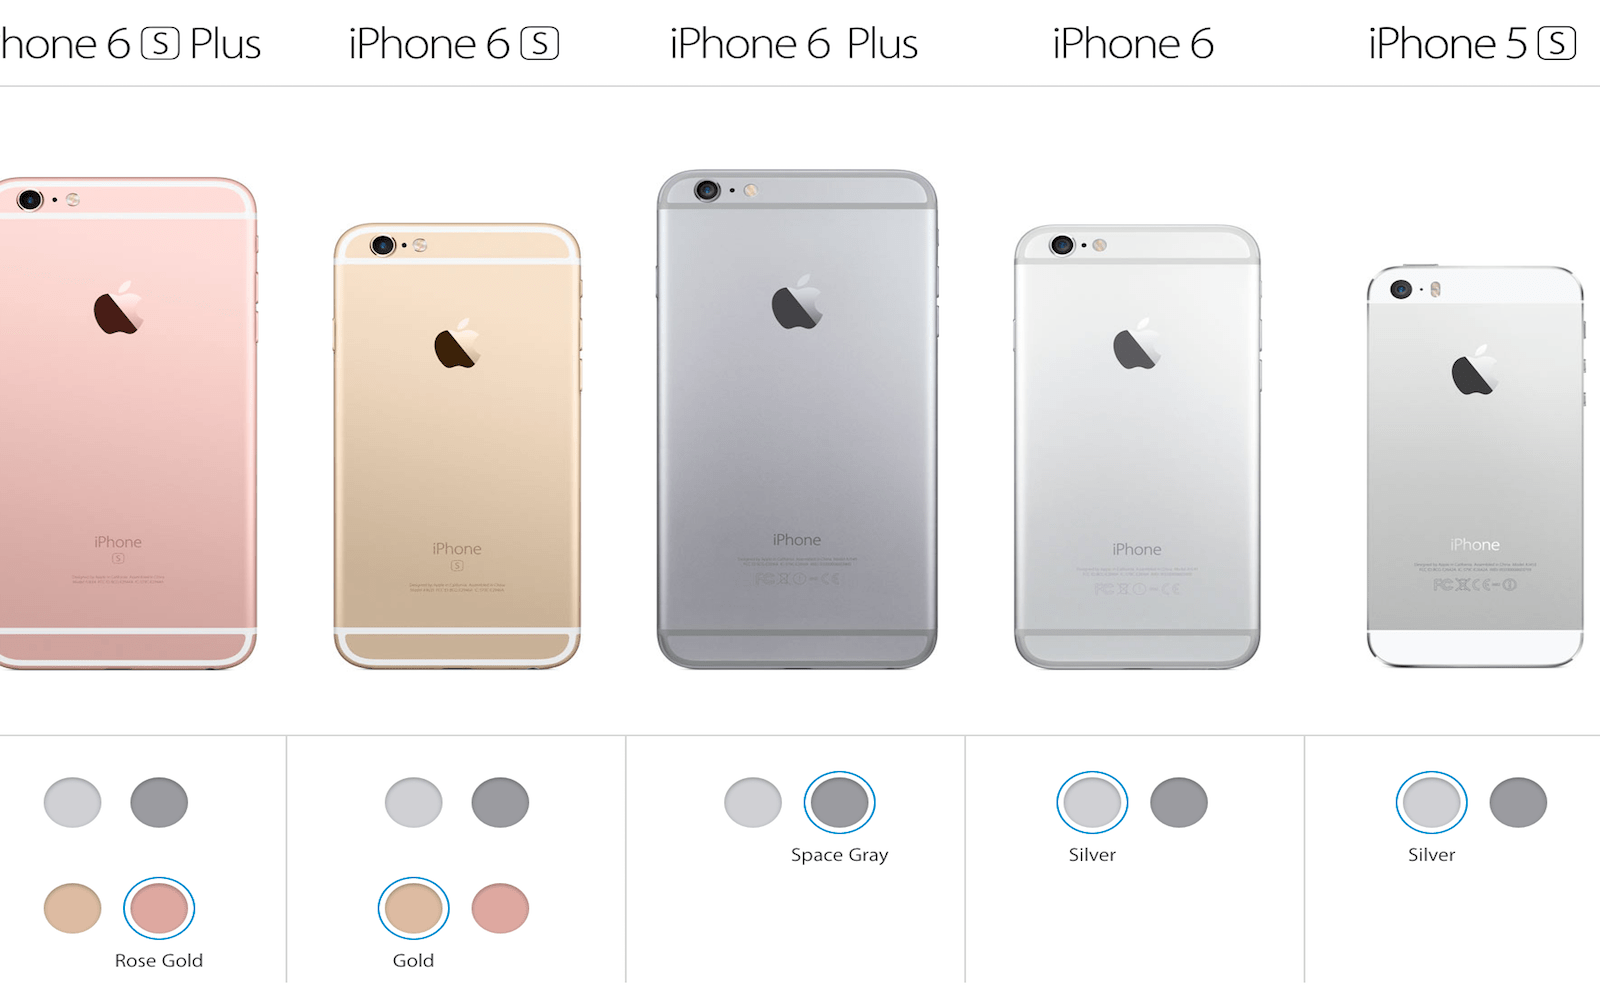 With Iphone 6s Launch Apple No Longer Offers Gold Color Option For Ipod Touch 6 16gb Plus 5s